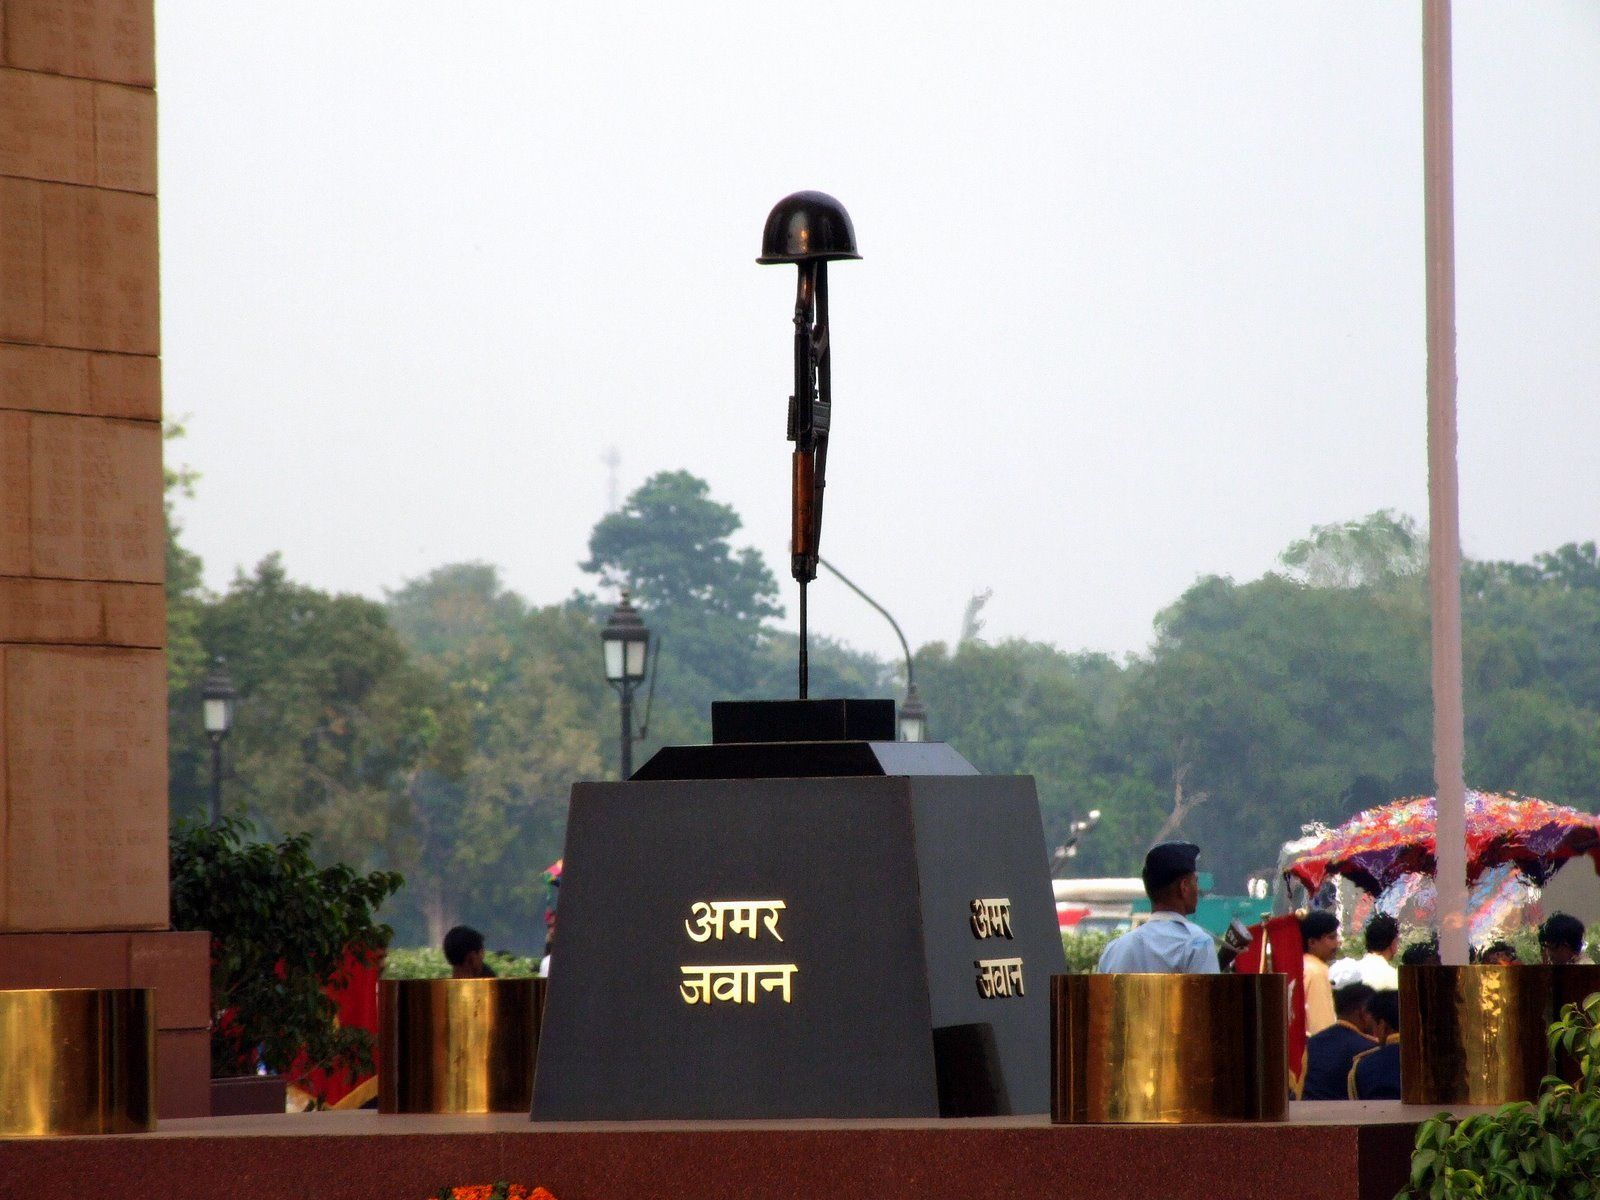 Amar jawan jyoti india gate delhi delhi pinterest india gate amar jawan jyoti india gate delhi altavistaventures Choice Image